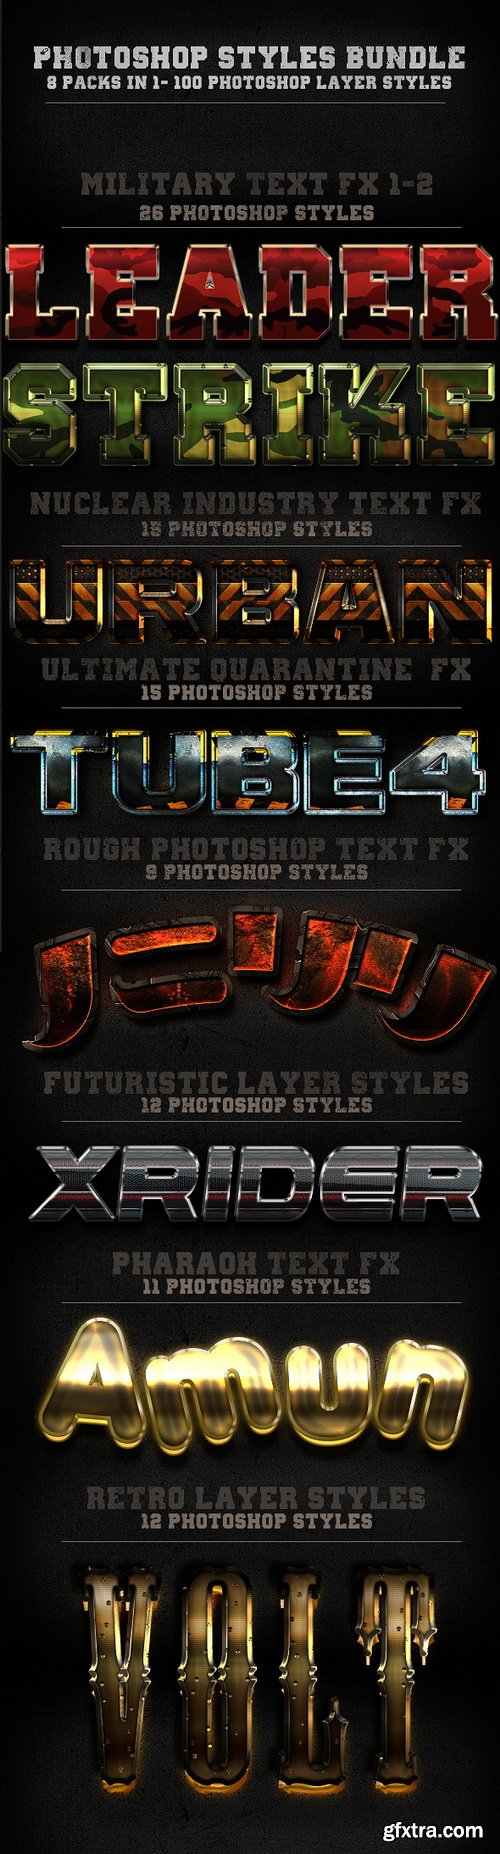 GraphicRiver - 100 Photohop Styles - 8 In 1-The Bundle 5951542